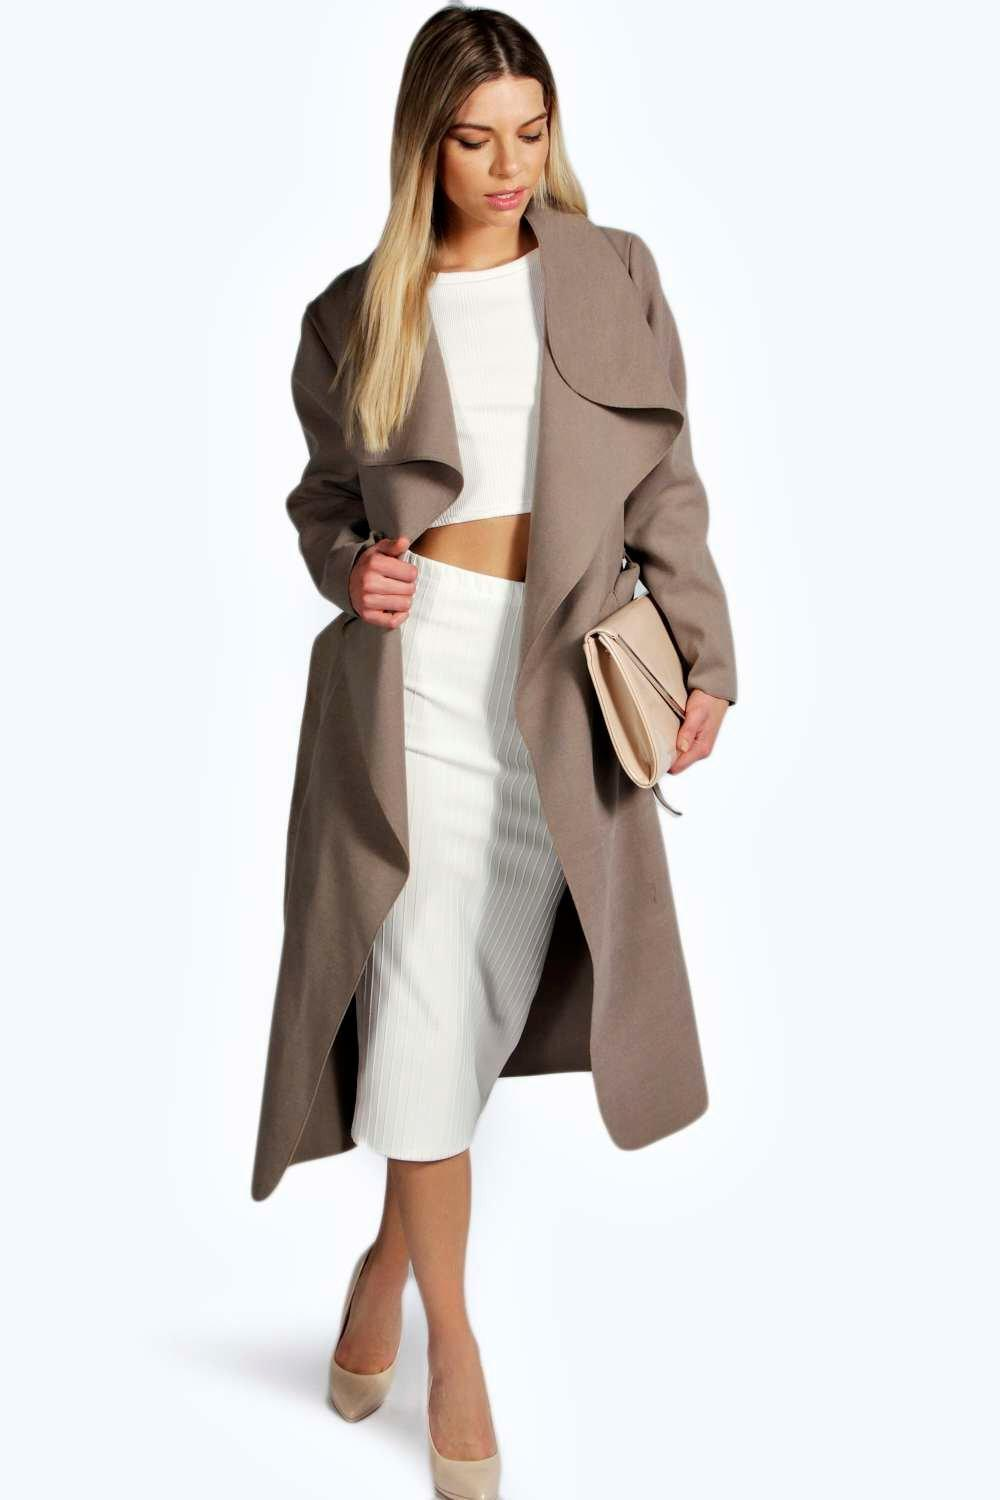 Belted Shawl Collar Coat Pink - pattern: plain; style: mac; length: on the knee; collar: standard lapel/rever collar; predominant colour: taupe; occasions: casual, creative work; fit: straight cut (boxy); fibres: polyester/polyamide - stretch; sleeve length: long sleeve; sleeve style: standard; texture group: technical outdoor fabrics; collar break: low/open; pattern type: fabric; season: s/s 2016; wardrobe: basic